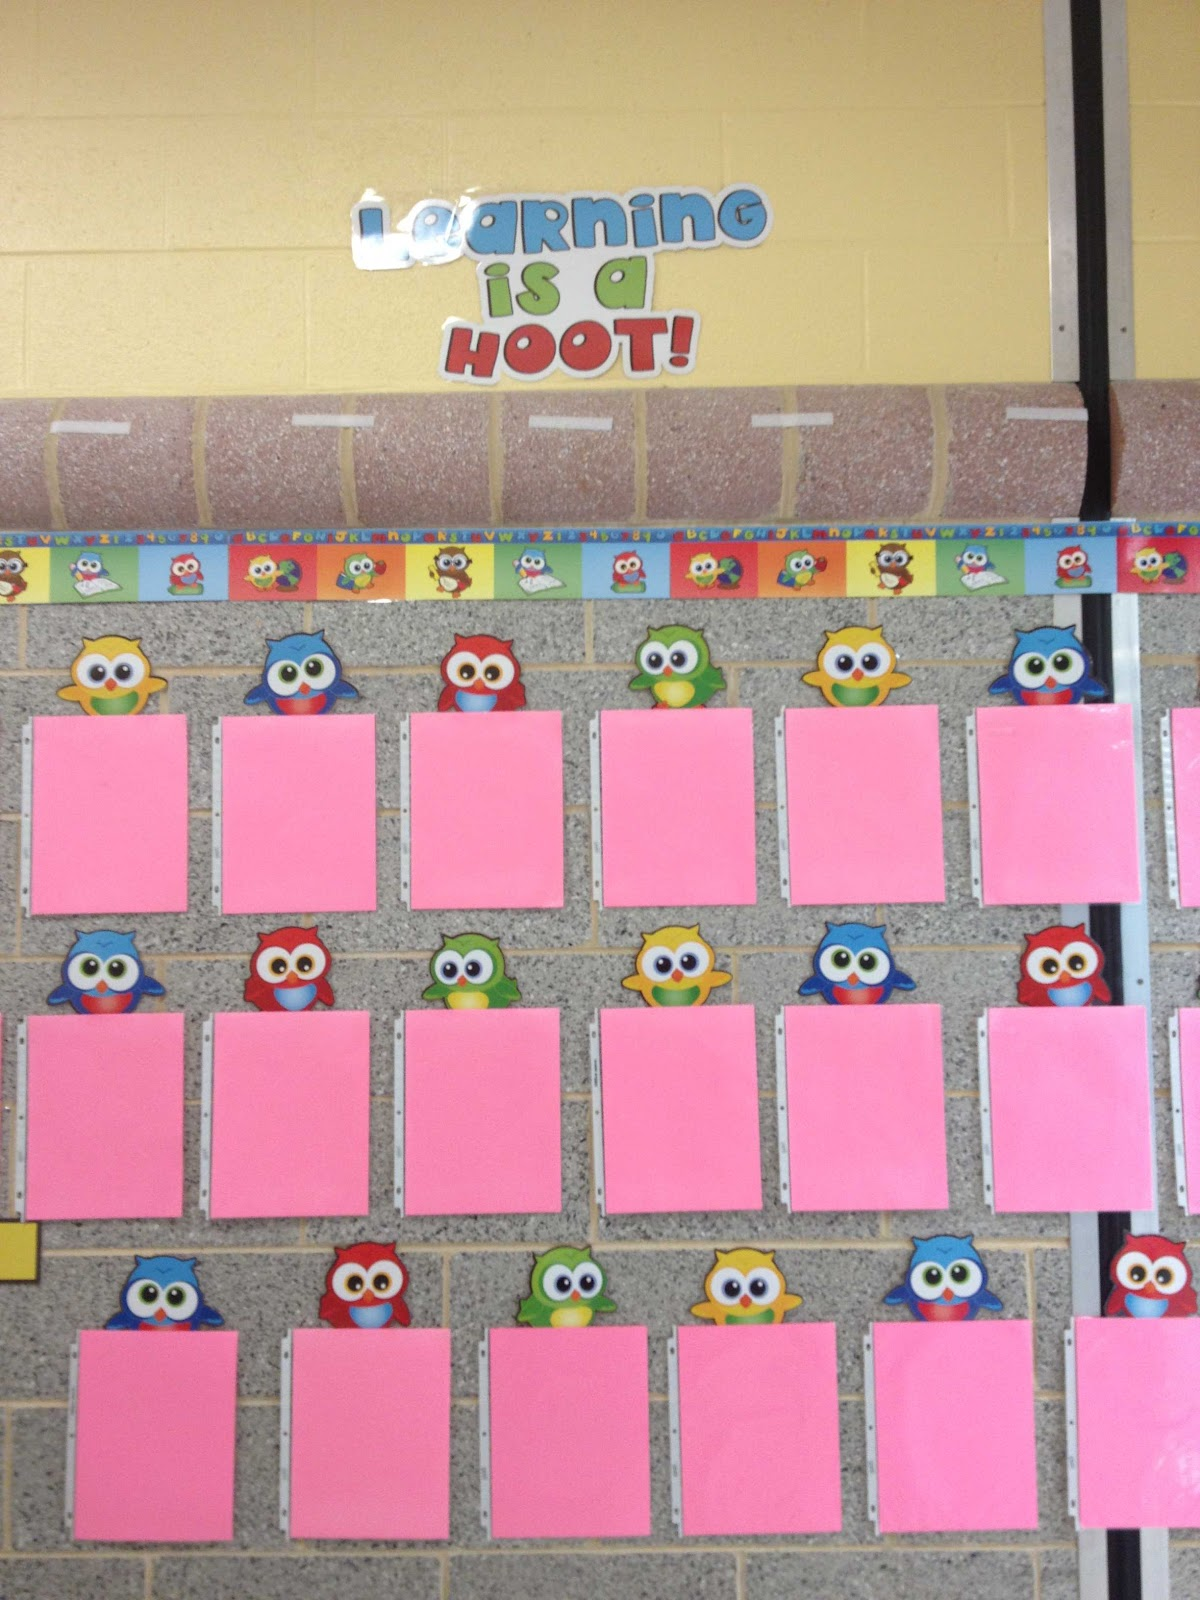 put student work on display in each sheet protector.